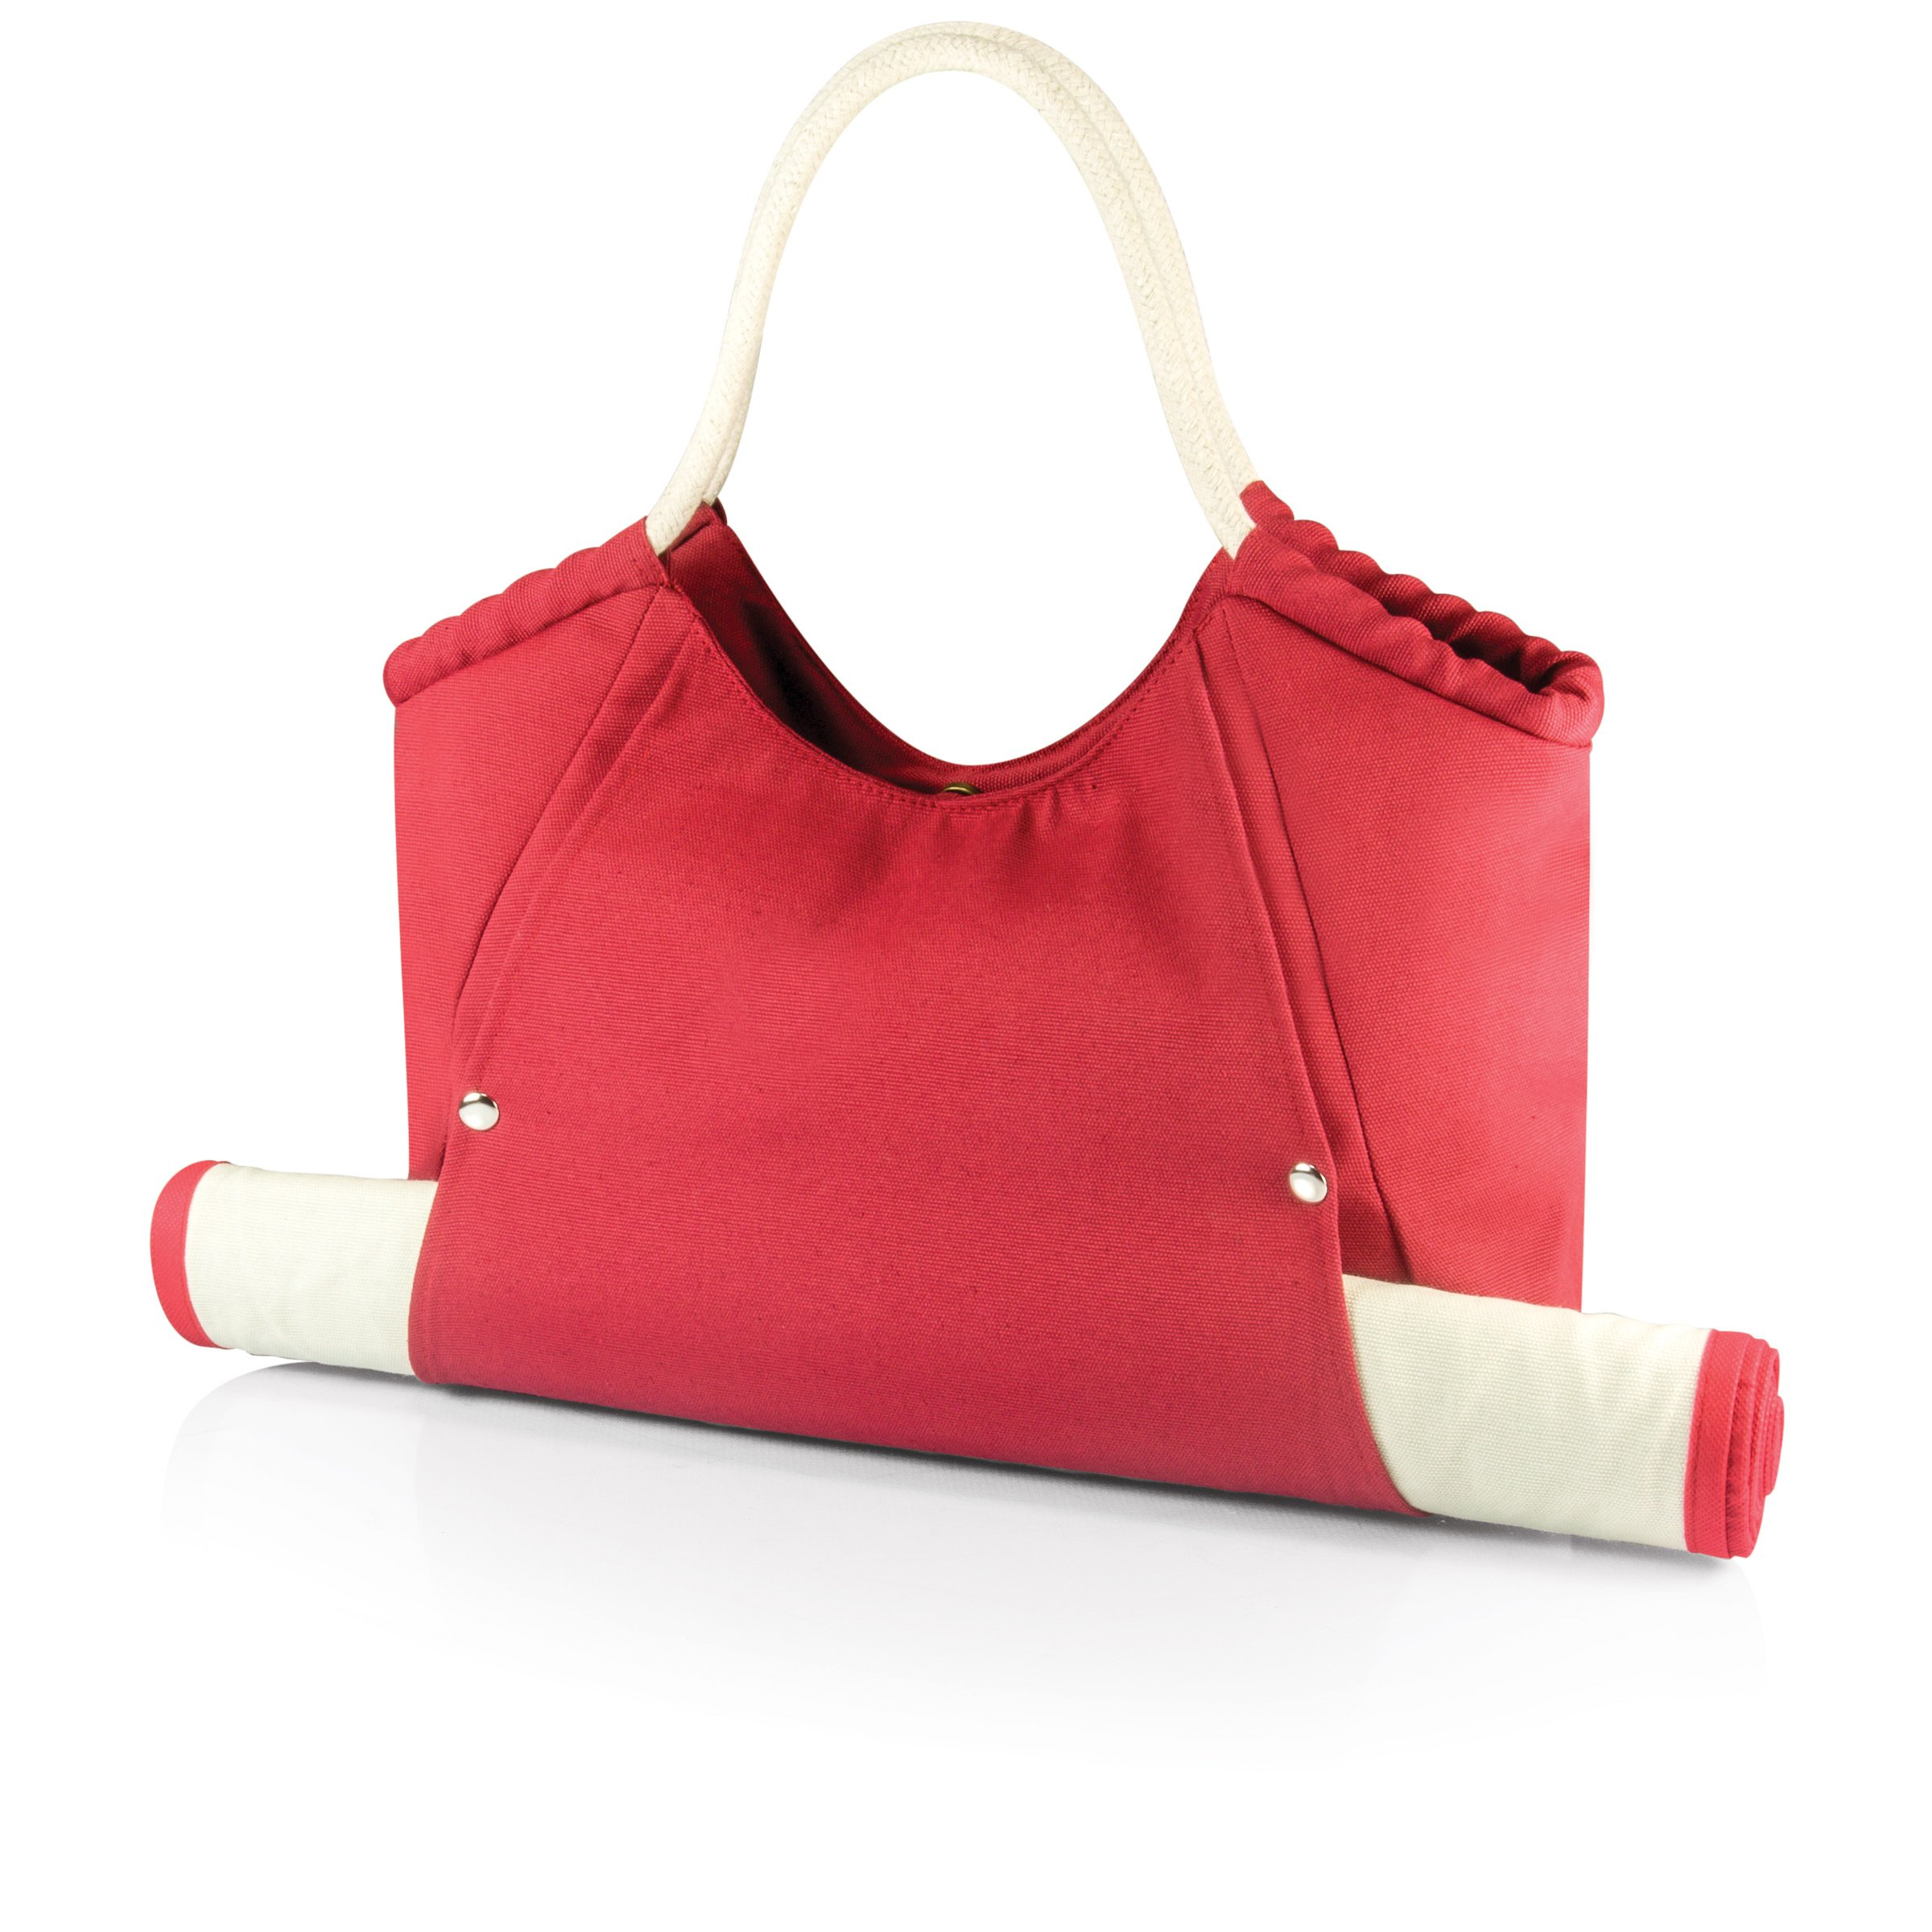 ONIVA - a Picnic Time Brand Cabo Beach Tote with Mat, Red by ONIVA - a Picnic Time brand